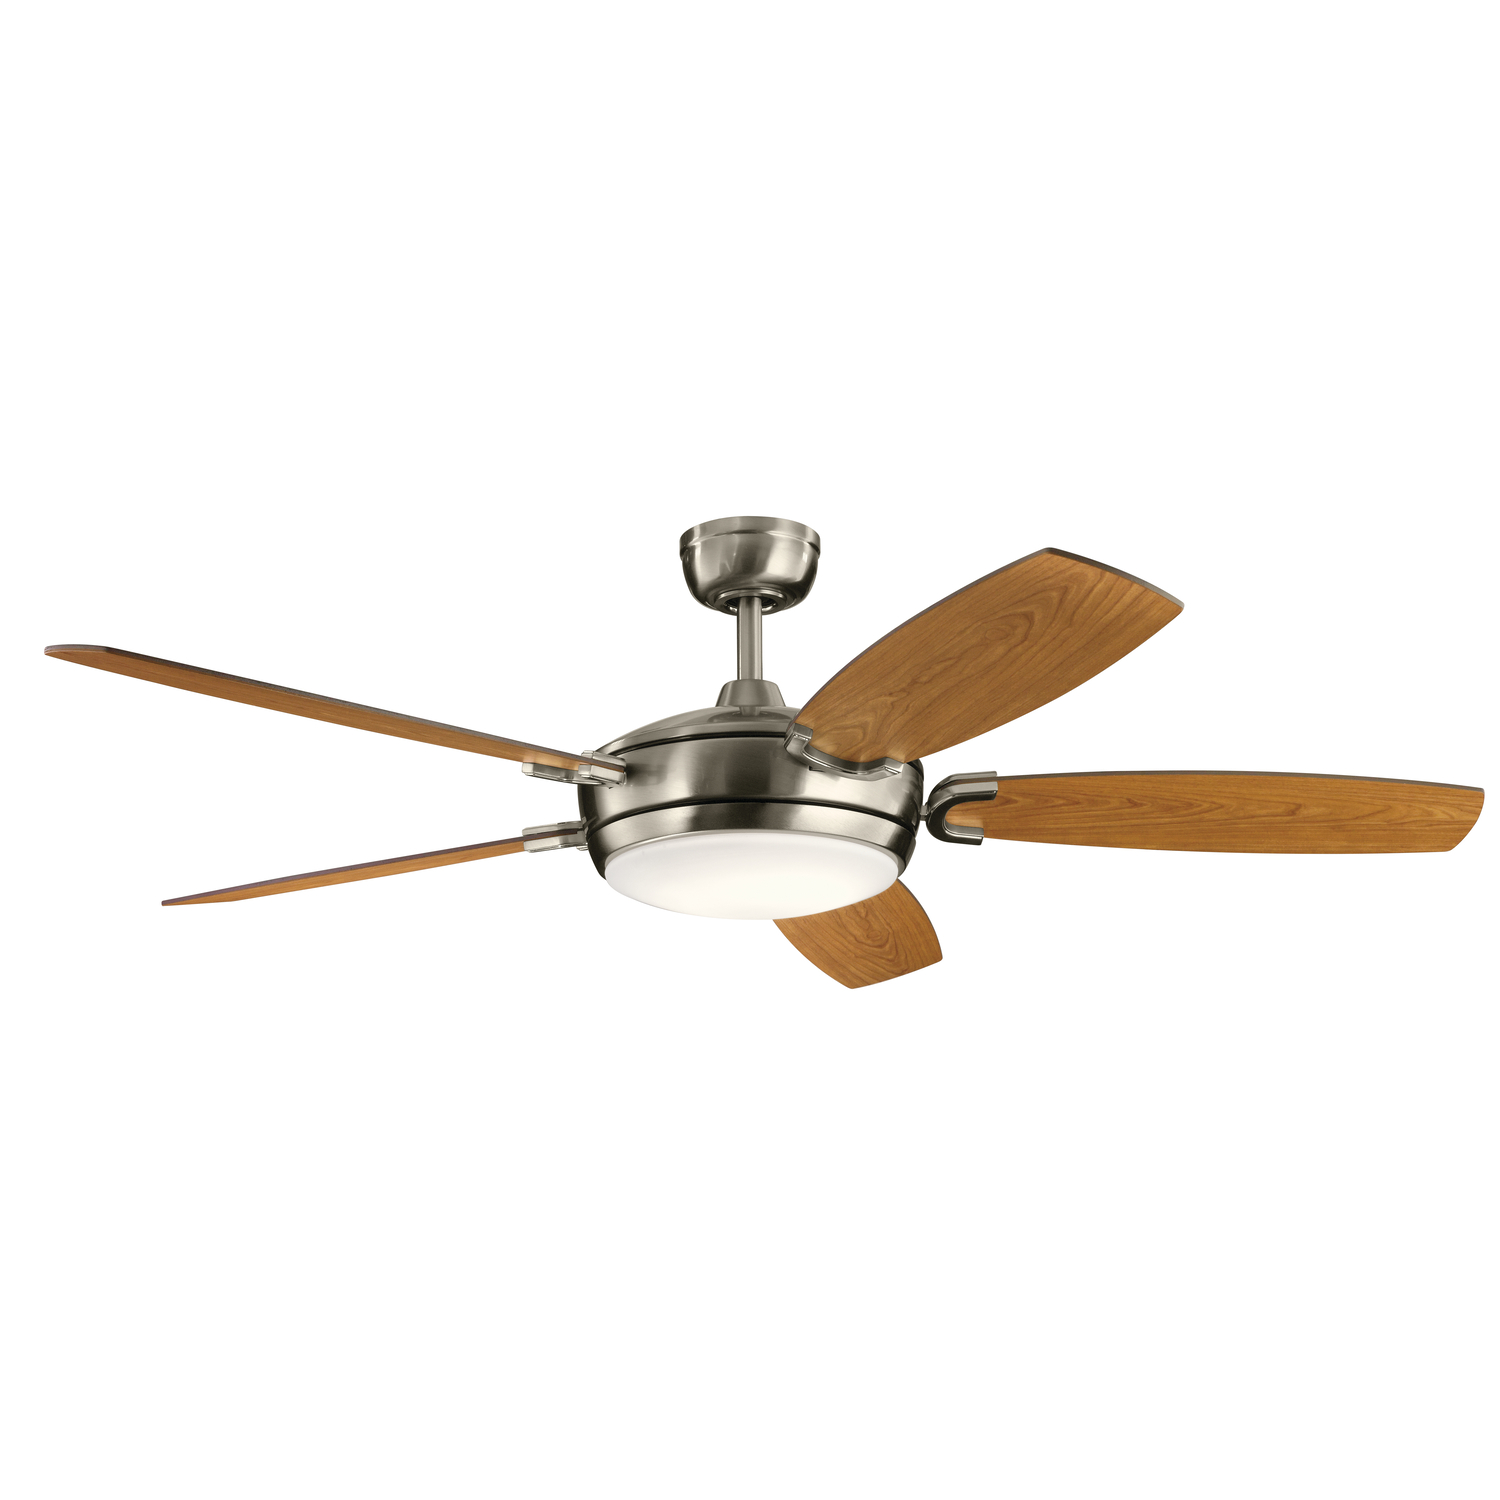 60 inchCeiling Fan from the Trevor collection by Kichler 300256BSS